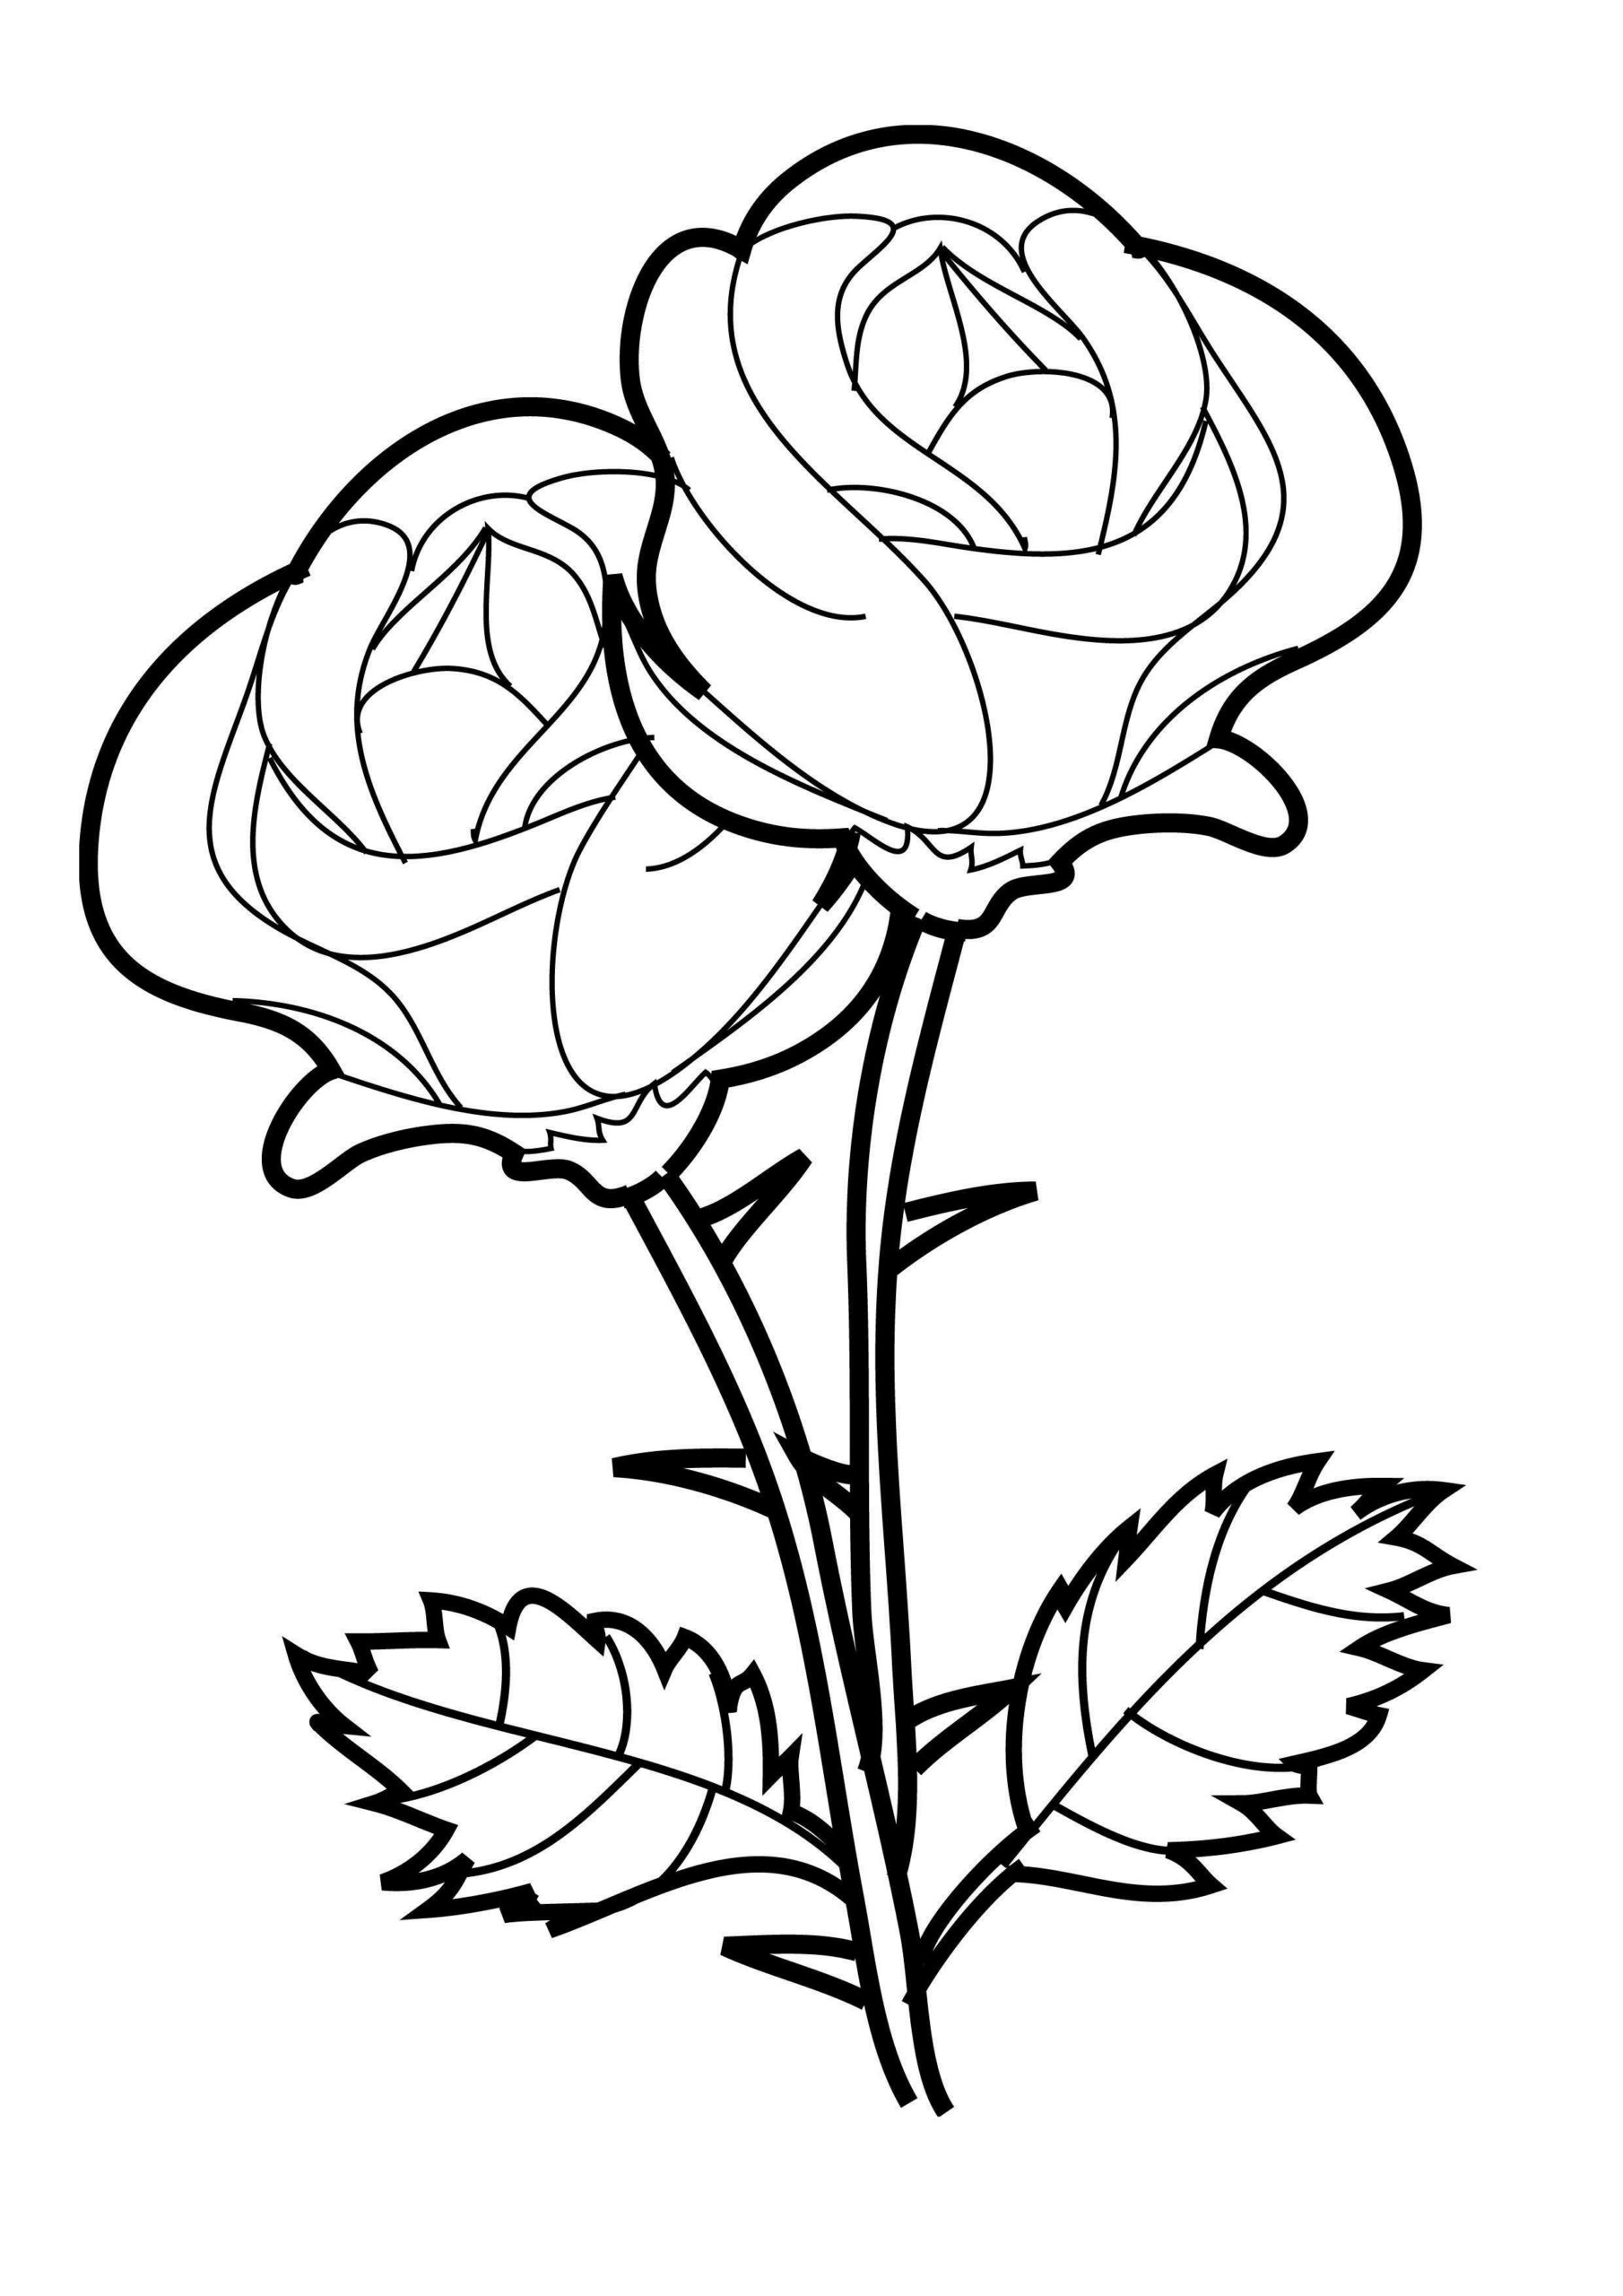 printable flowers coloring pages detailed flower coloring pages to download and print for free pages coloring flowers printable